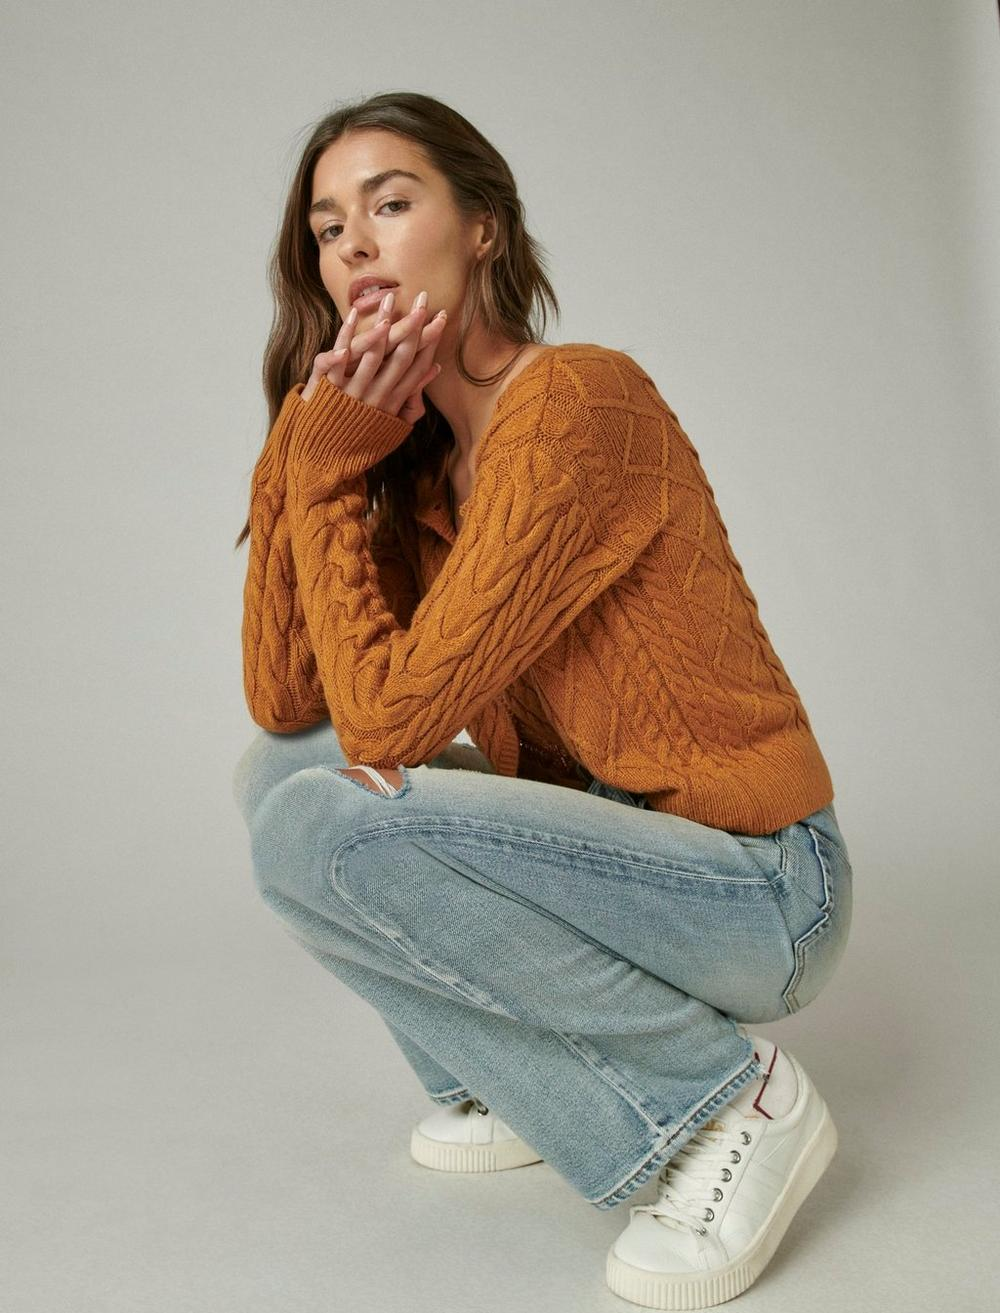 CABLE CARDIGAN TOP, image 6